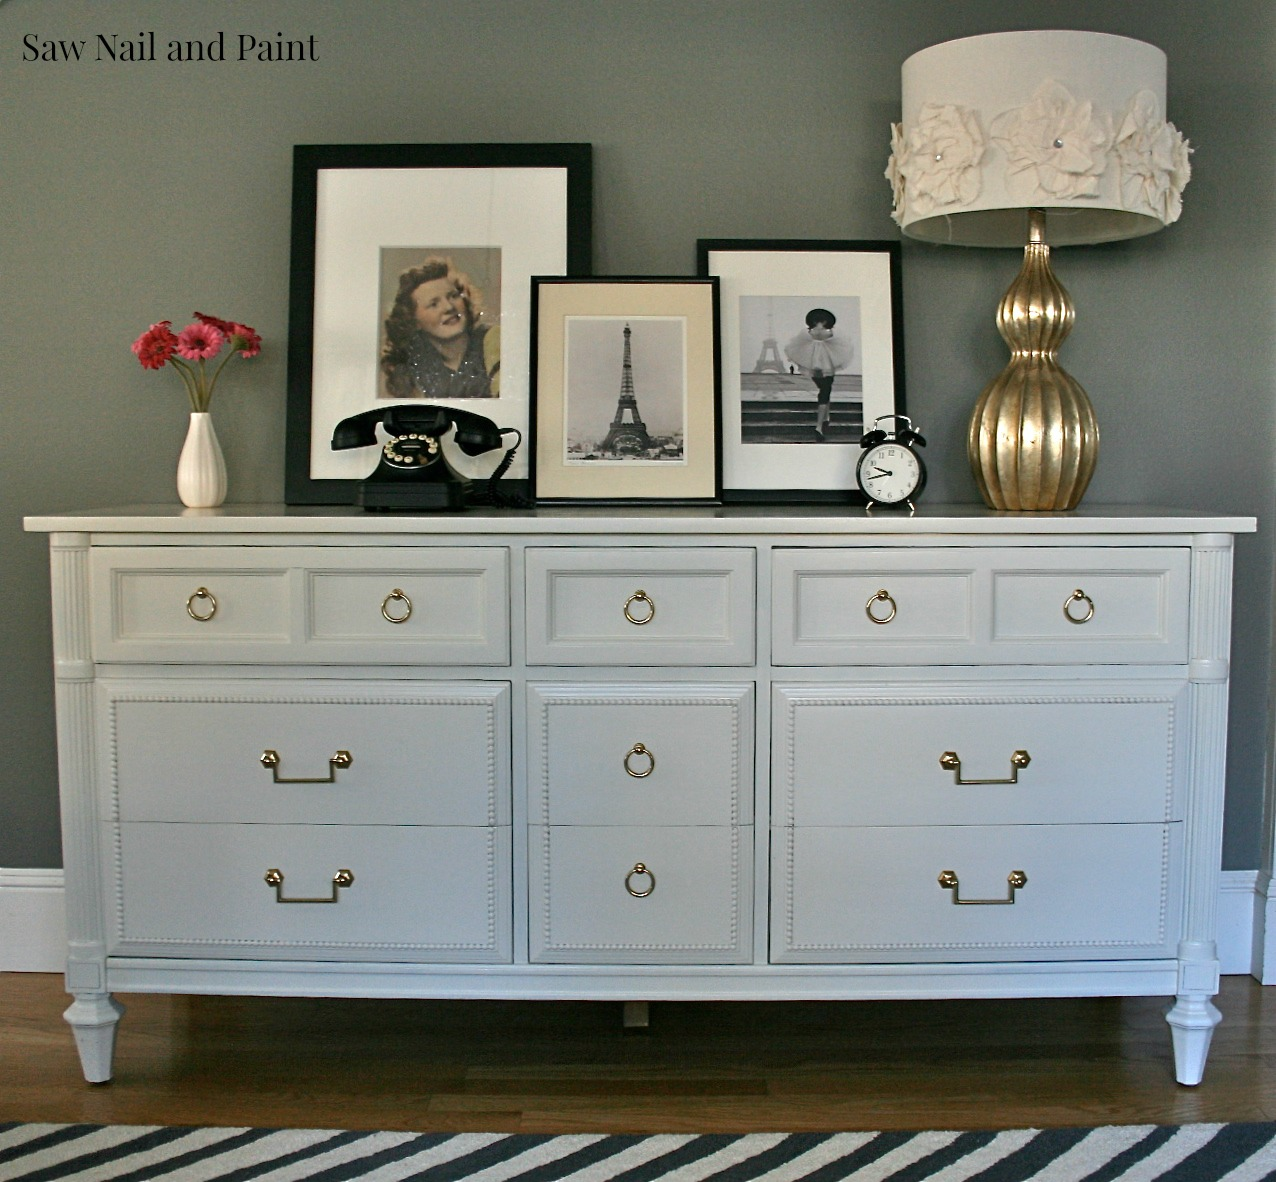 How to paint furniture in white color at home